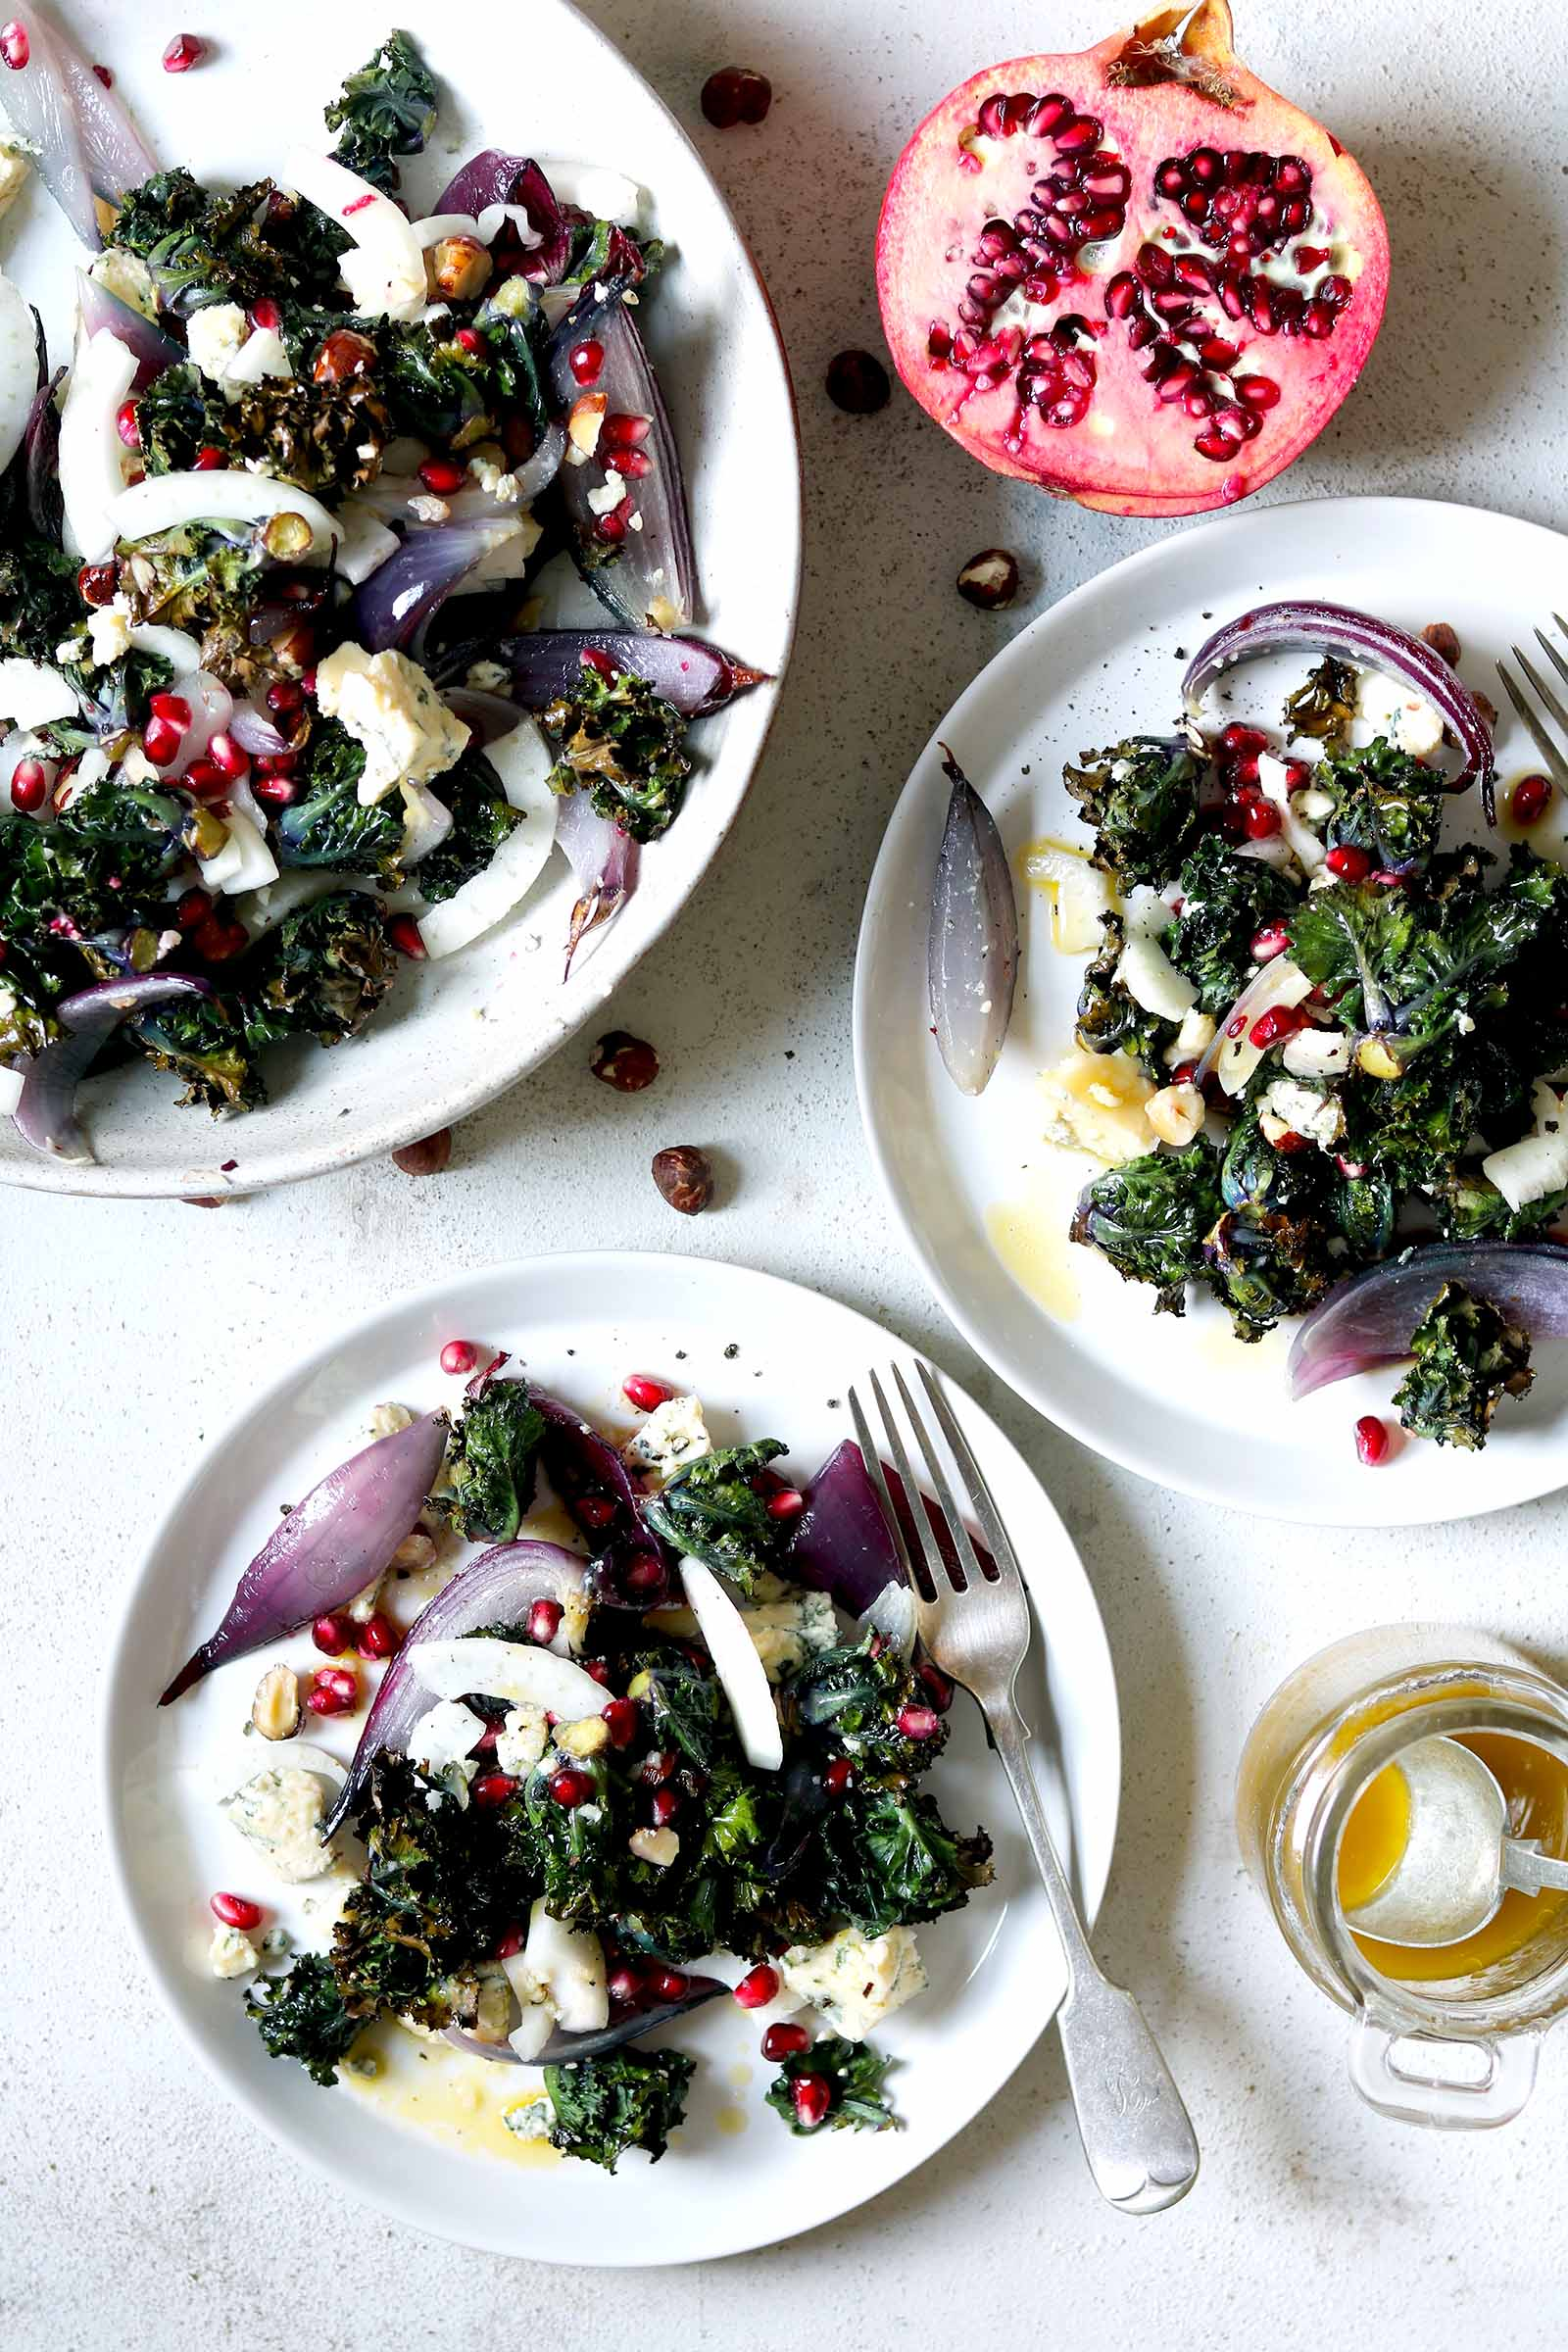 Winter Salad of Roasted Kalettes and Stilton